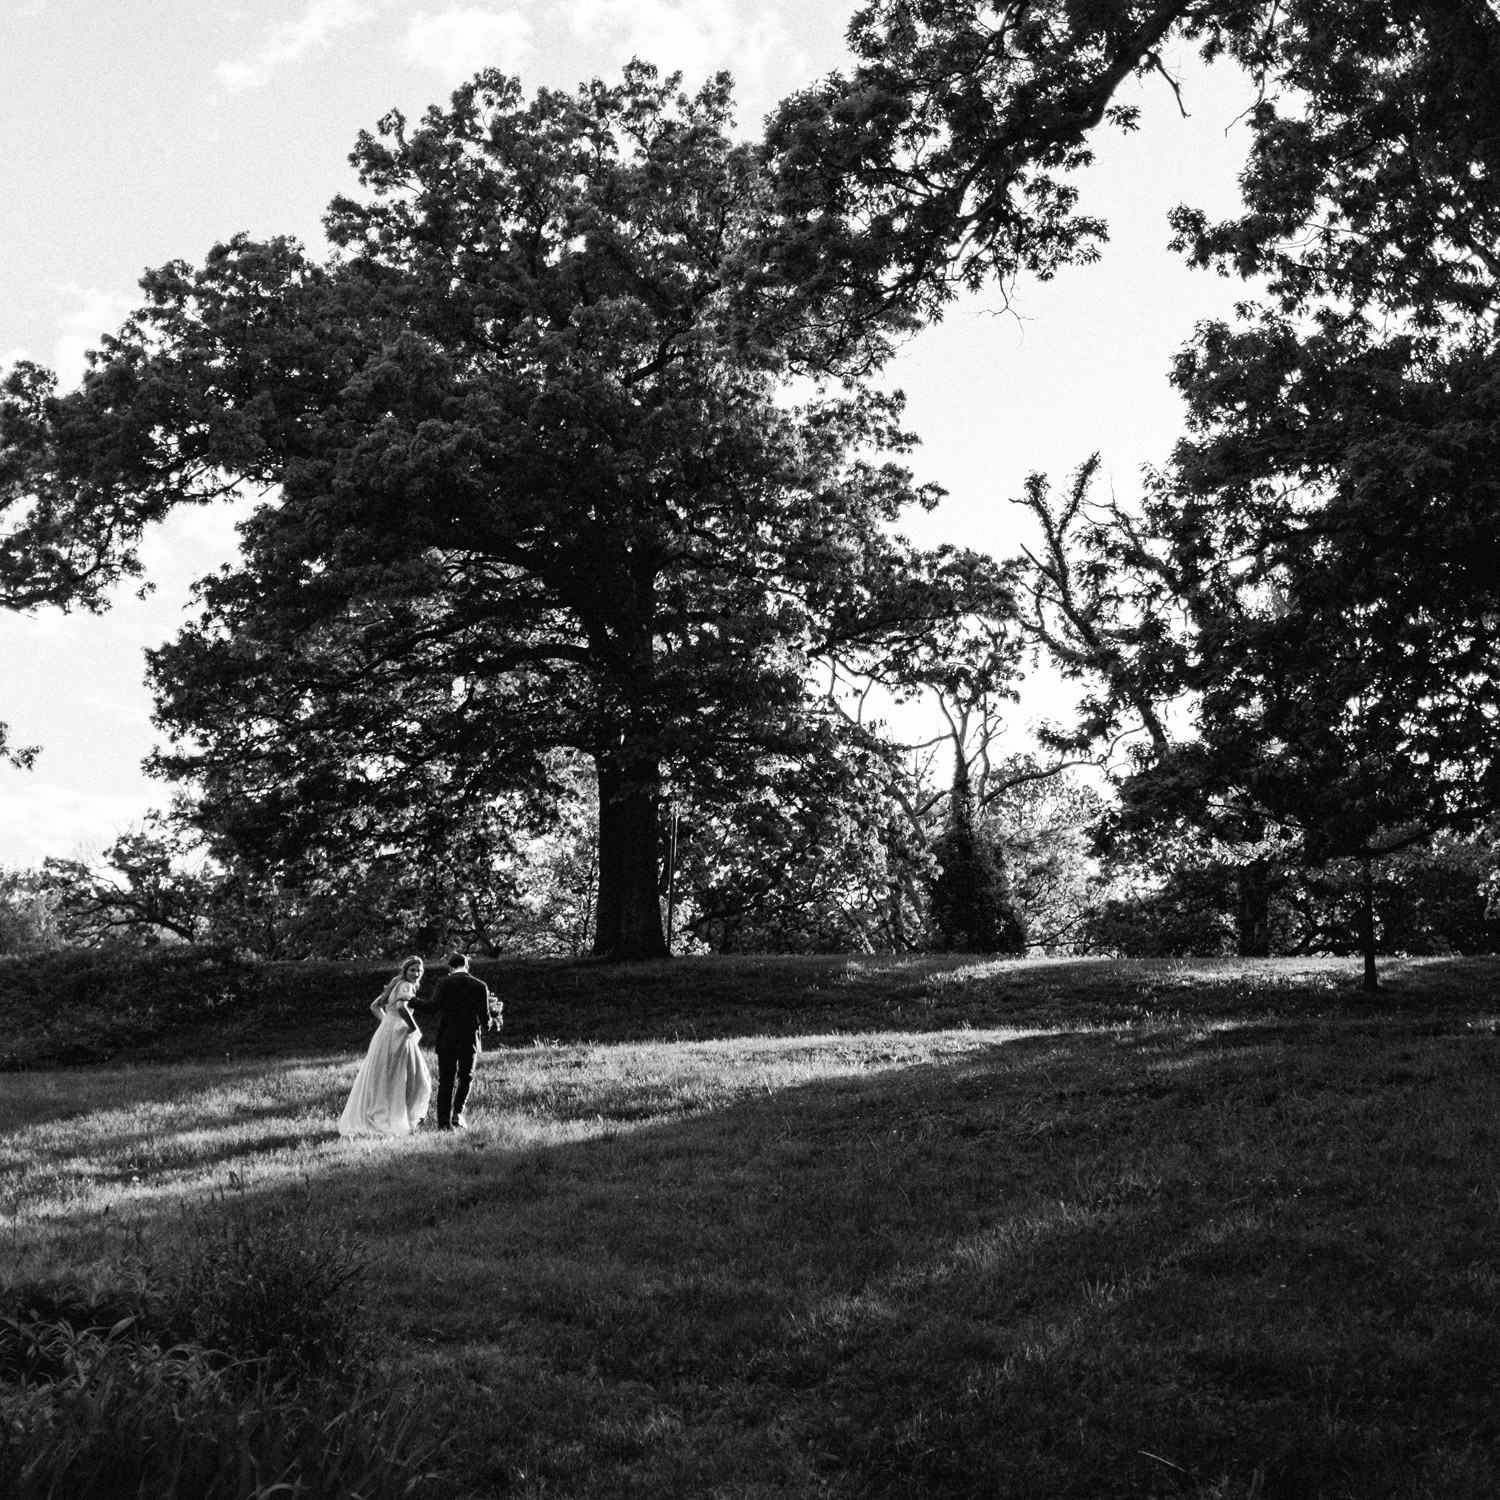 portrait of bride and groom walking together in the sunlight